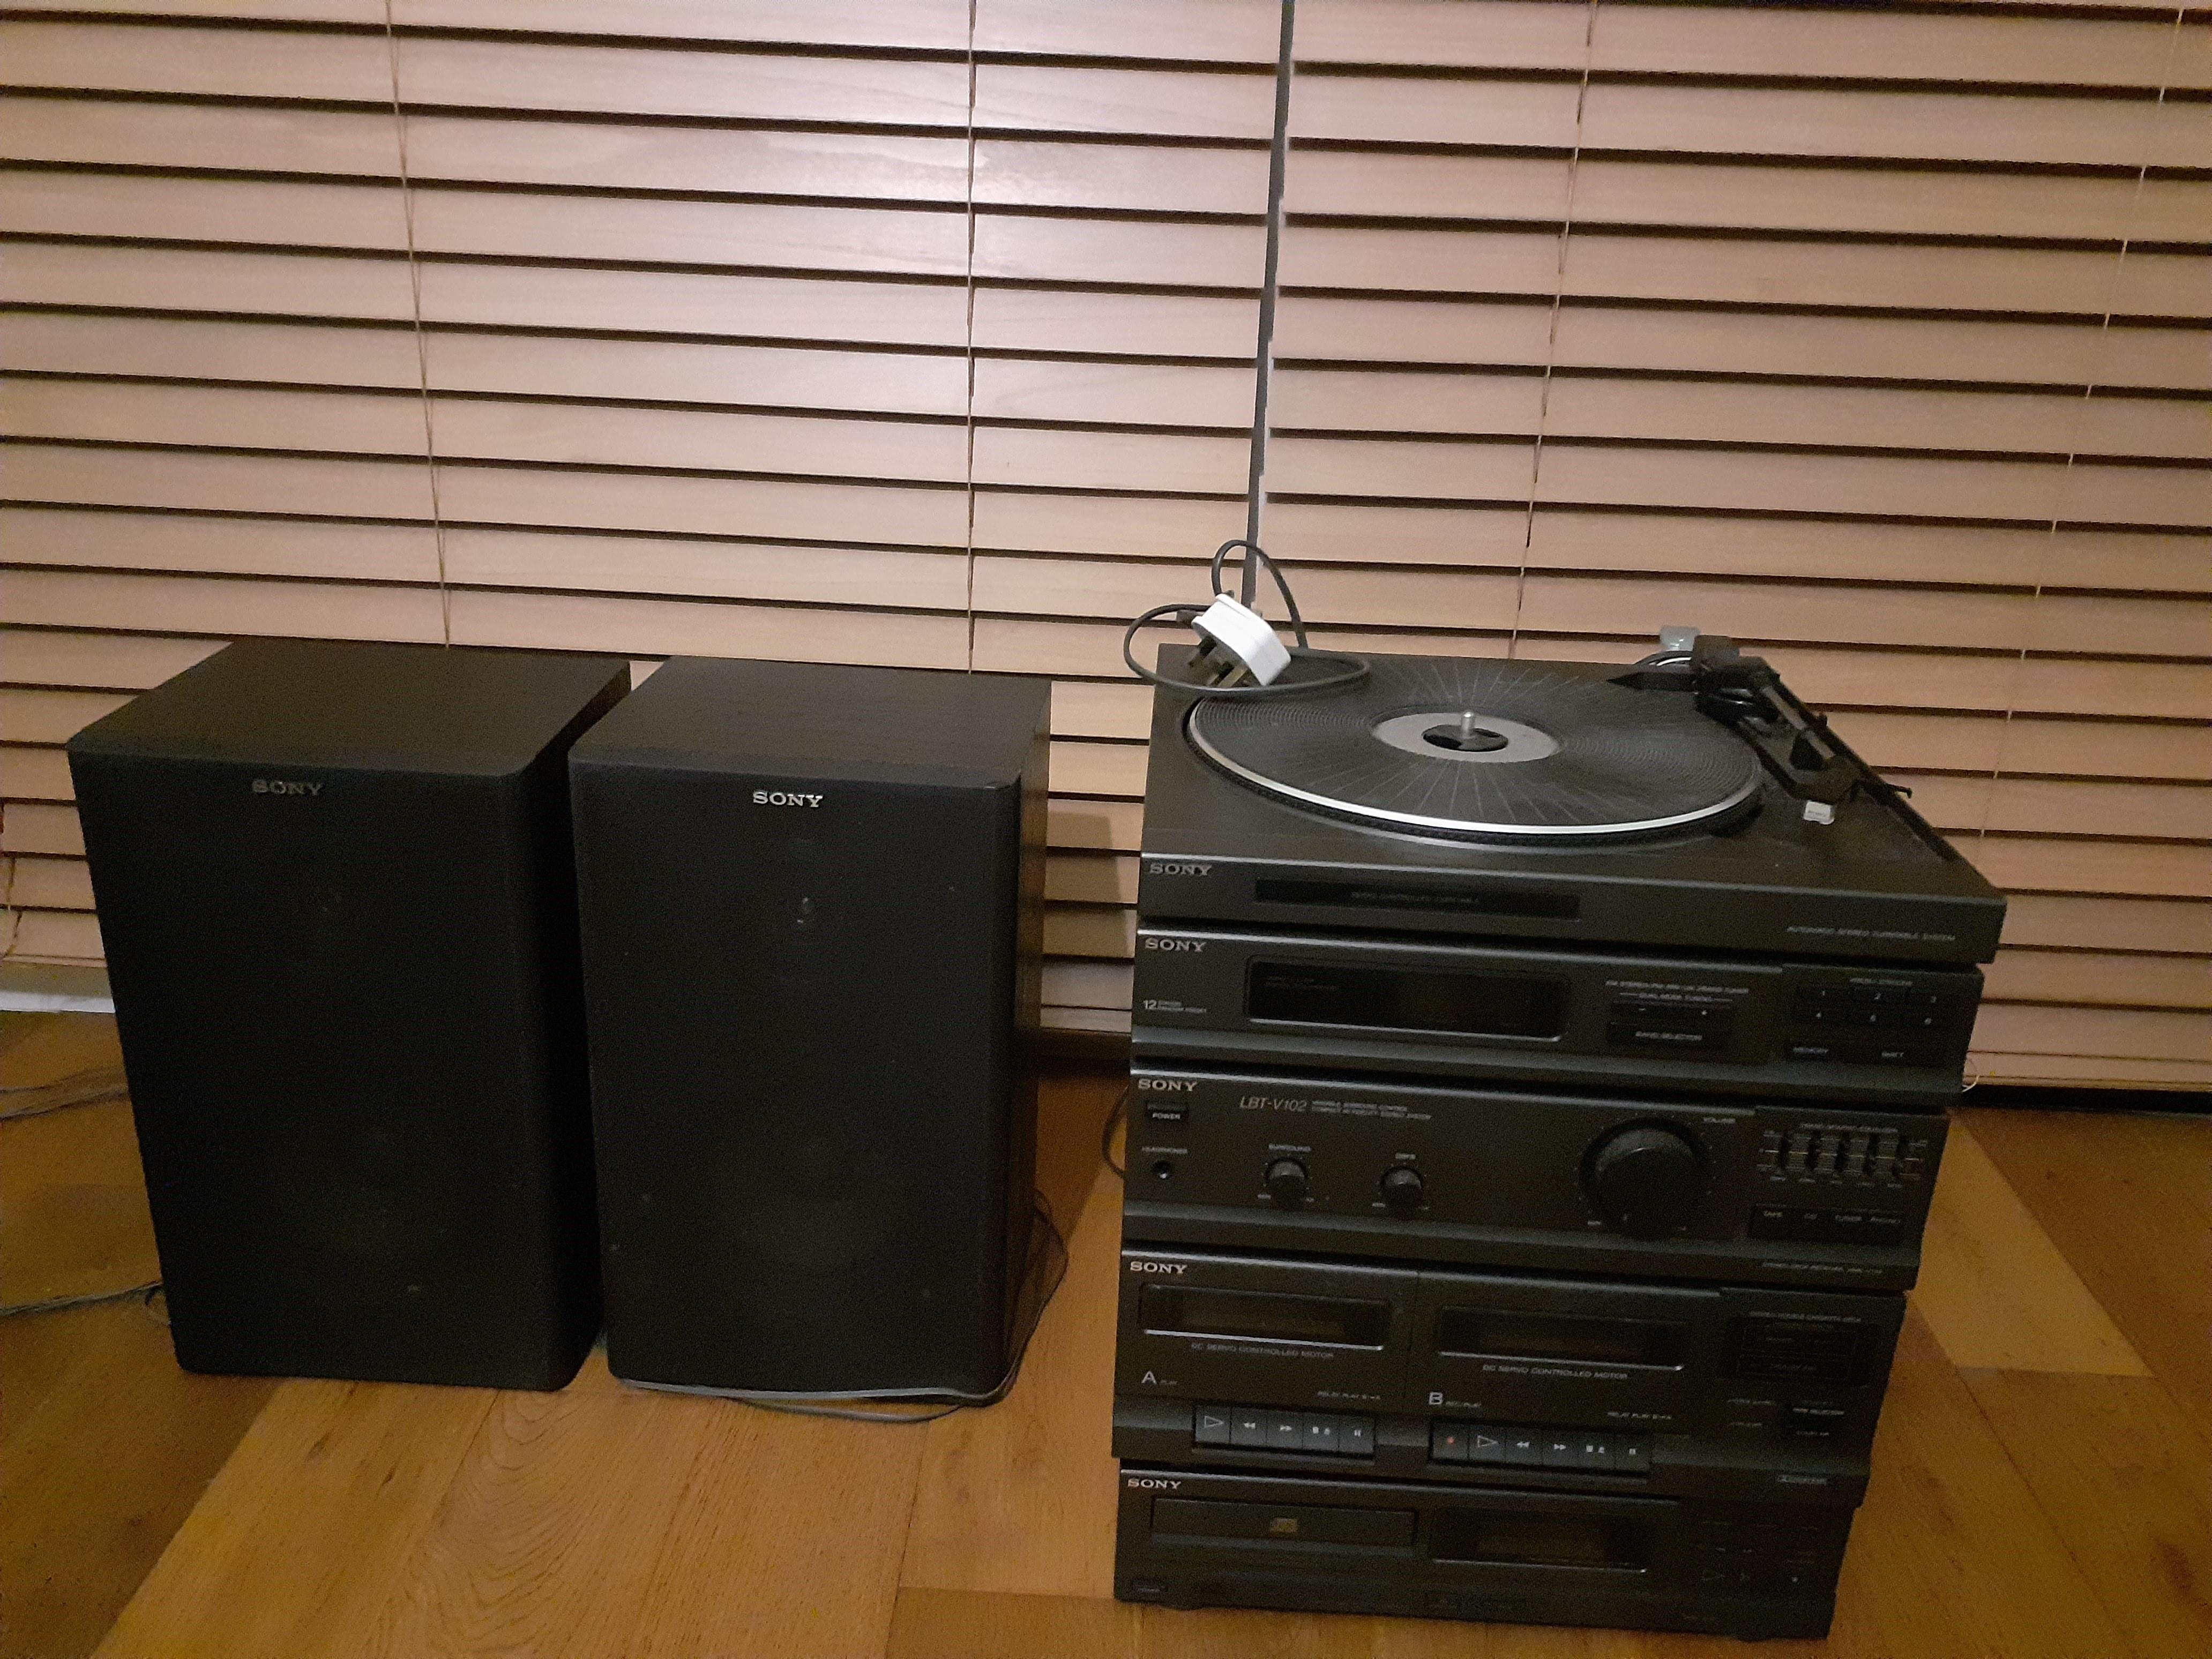 Sony vinyl record player and CD & cassette tape player